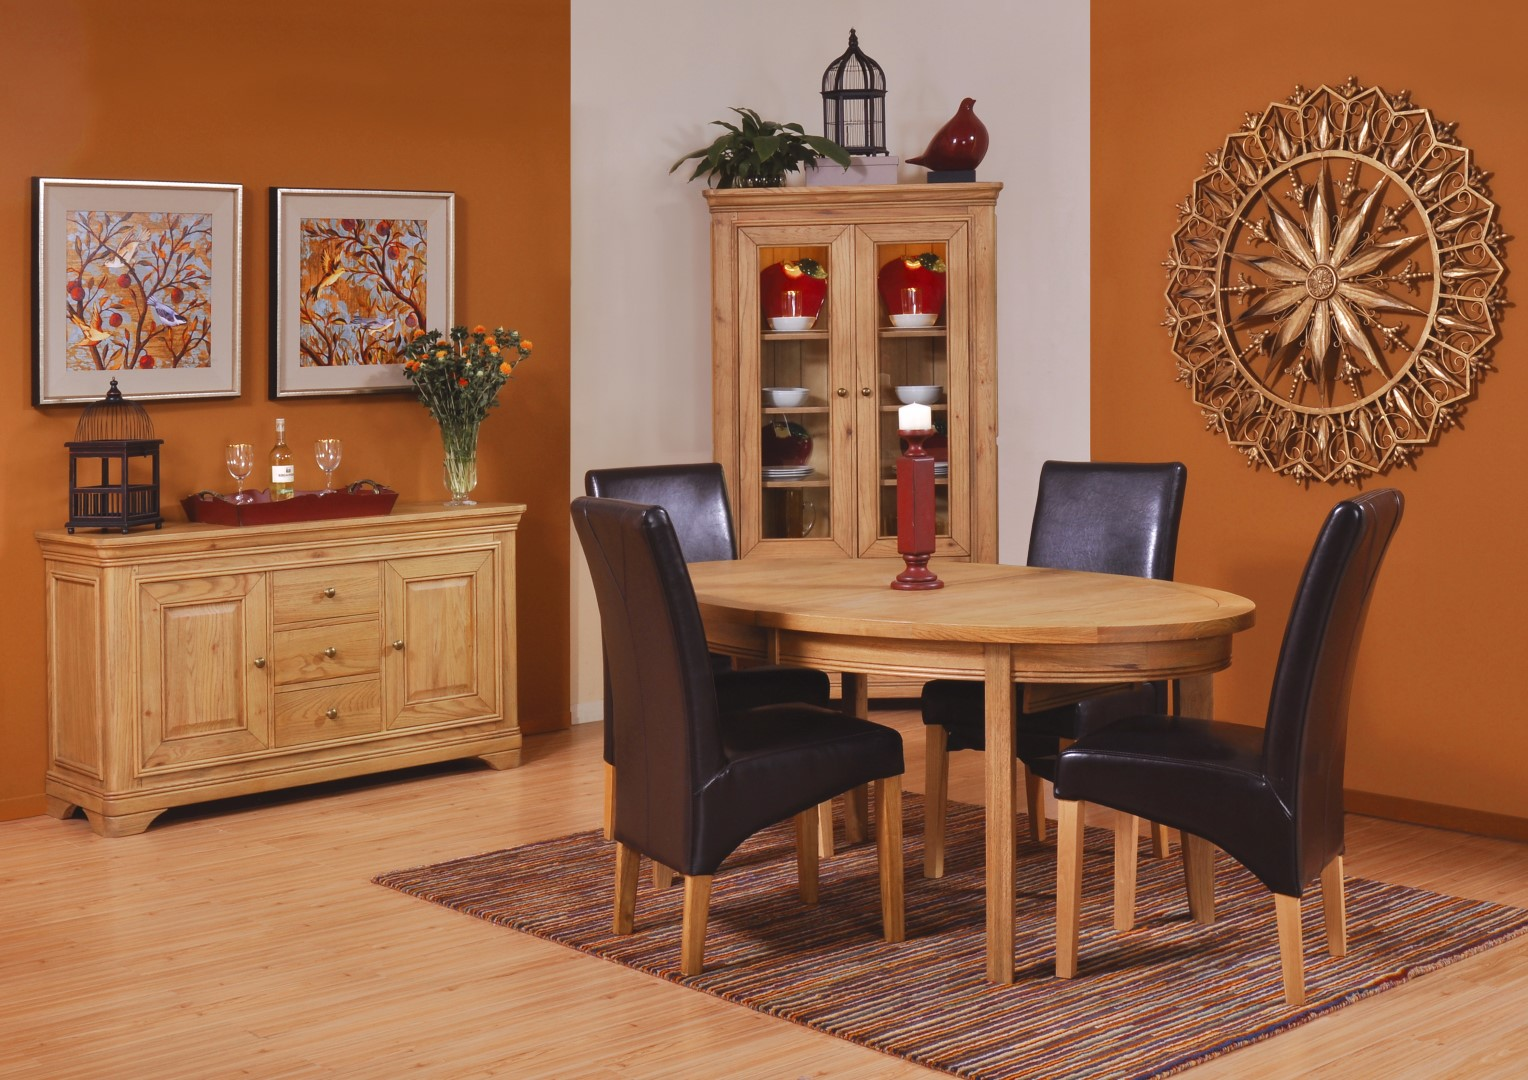 Providence Bedroom Furniture Providence Furniture Lounge Bedroom Dining Study Traditional And